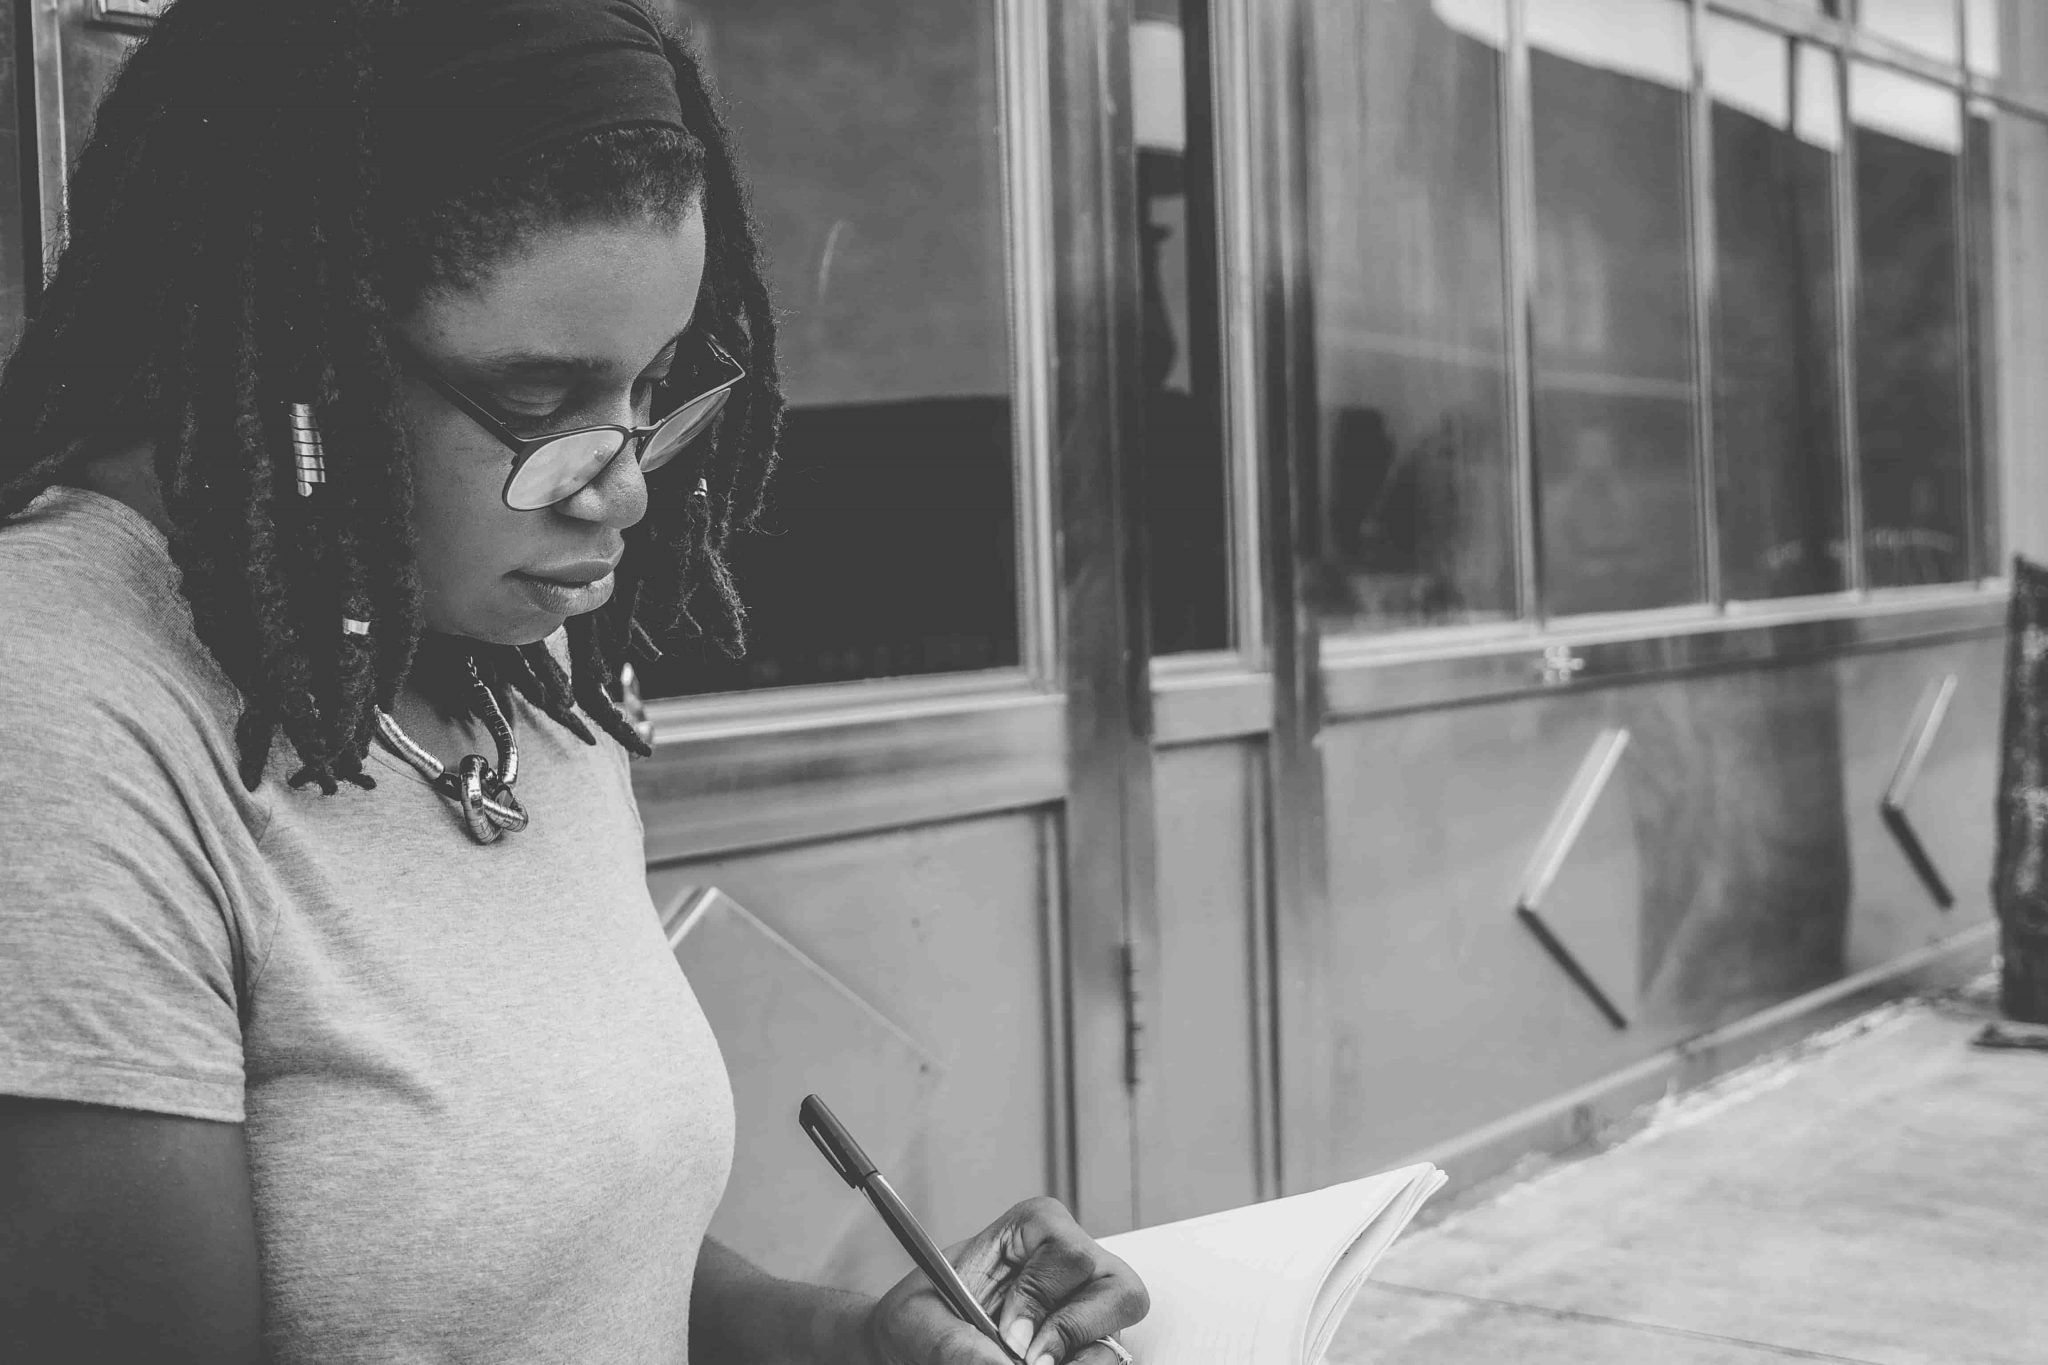 A girl with an eyeglass who is writing